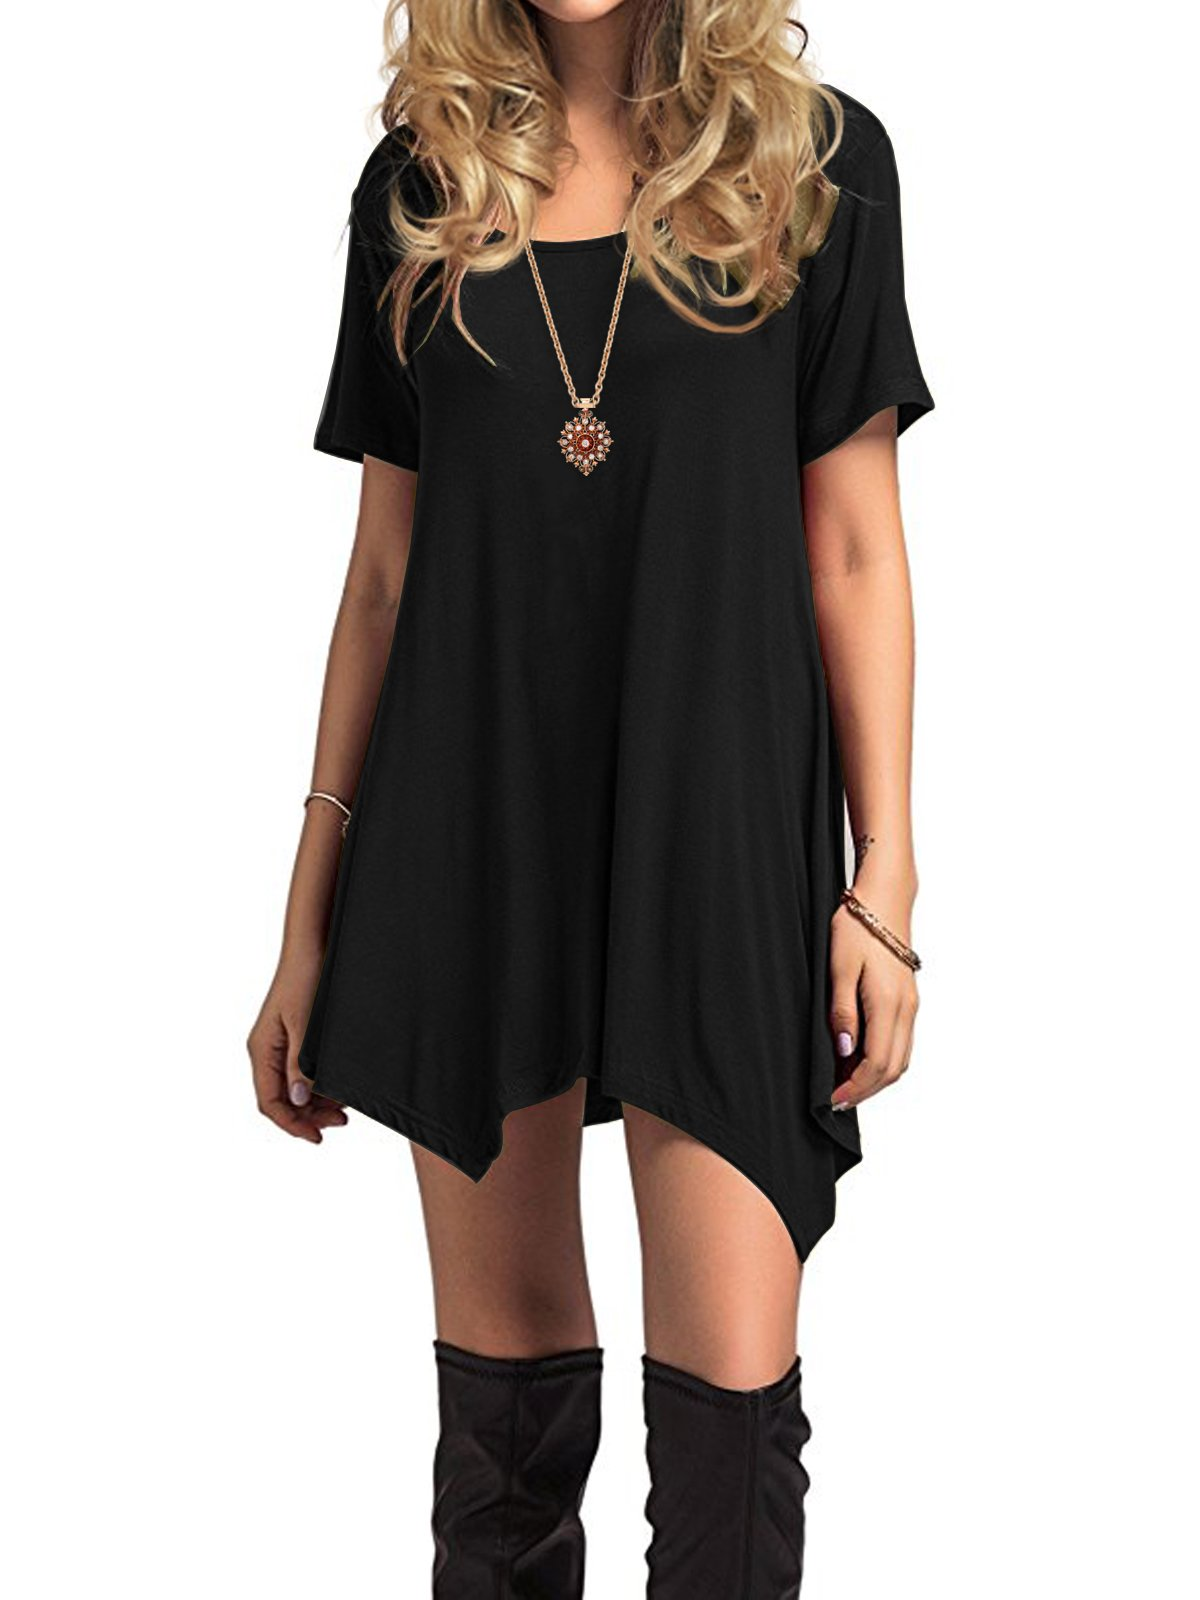 Century Star Womens Short Sleeve T-Shirt Dress Casual Loose Fit Tunic Dress Cute Swing T-Shirt Dress for Women Black Small